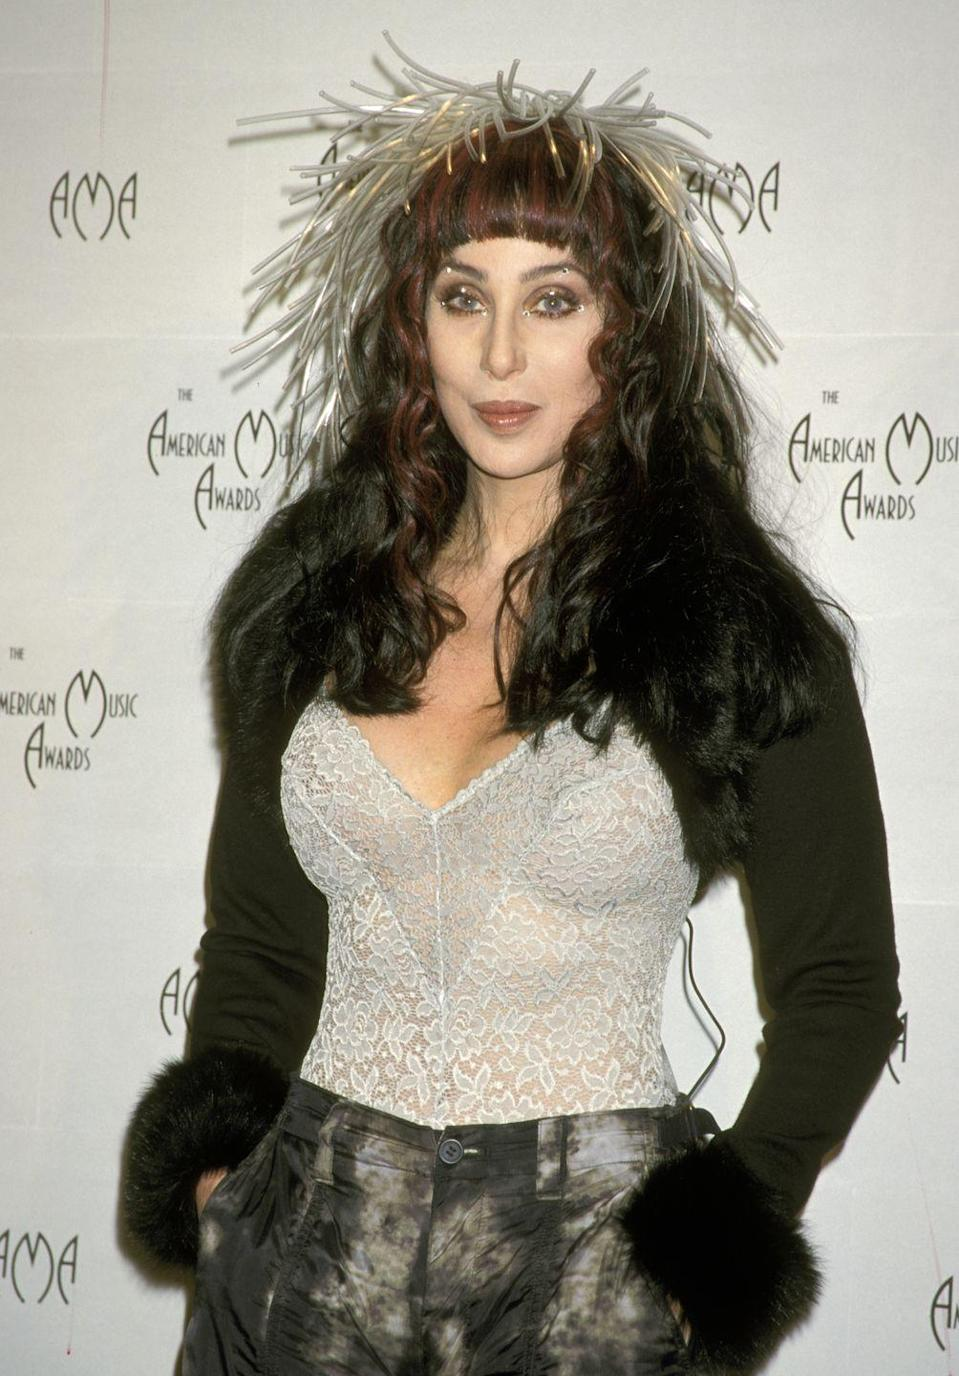 <p>In a sheer lace corset, fur-trimmed cardigan, and Medusa-inspired headpiece at the 1999 American Music Awards. </p>